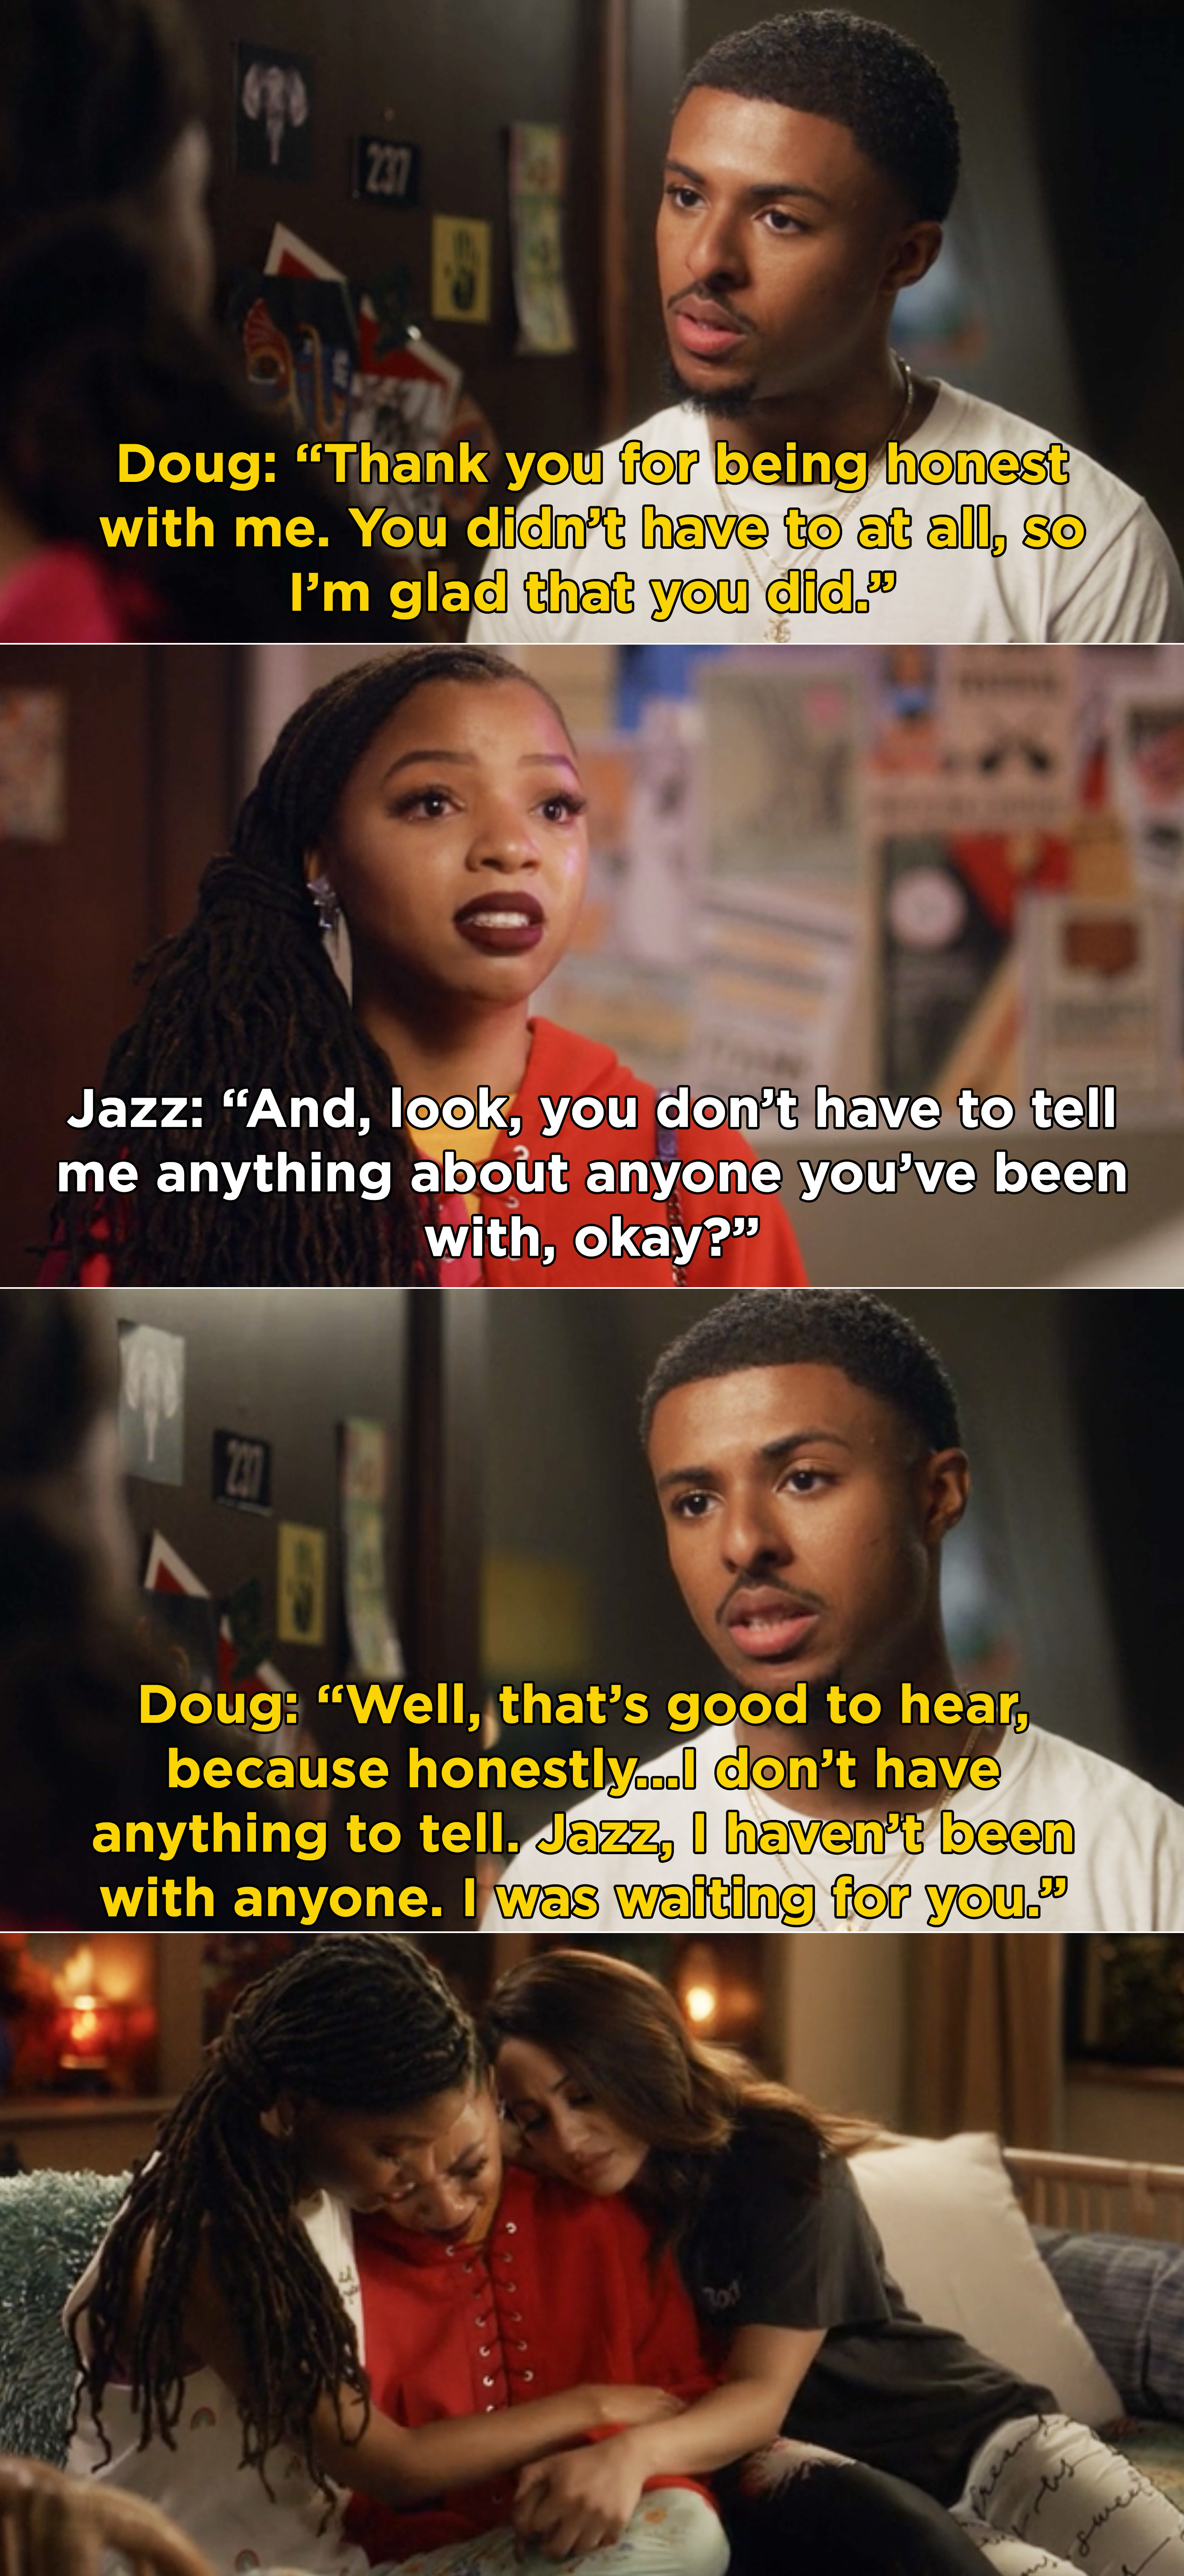 """Doug saying he appreciates Jazz's honesty, but he had nothing to tell because, """"I was waiting for you"""""""